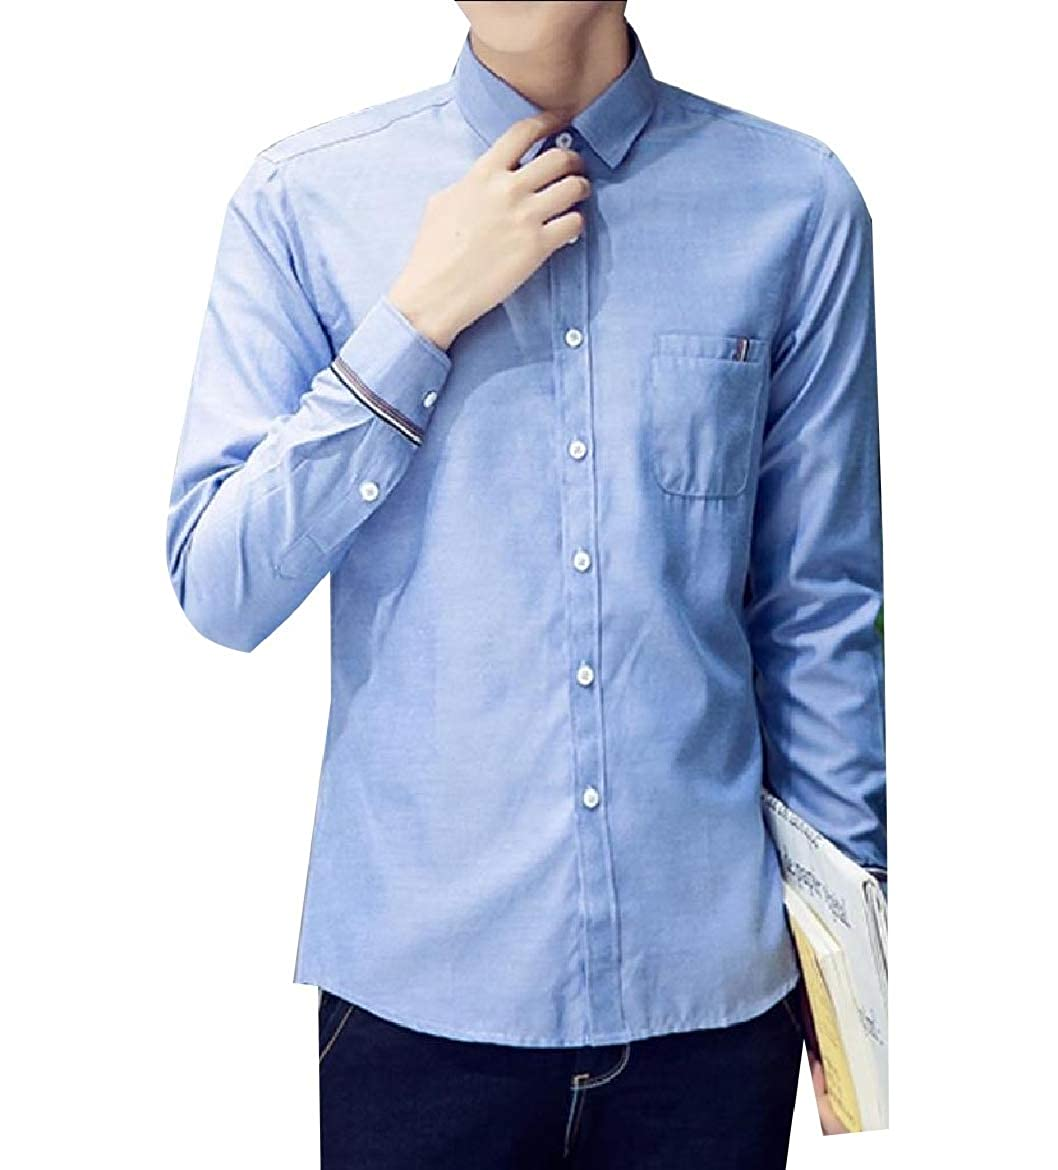 YUNY Men Business Slim Fitting Oversized Classic Solid Western Shirt Lake Blue S